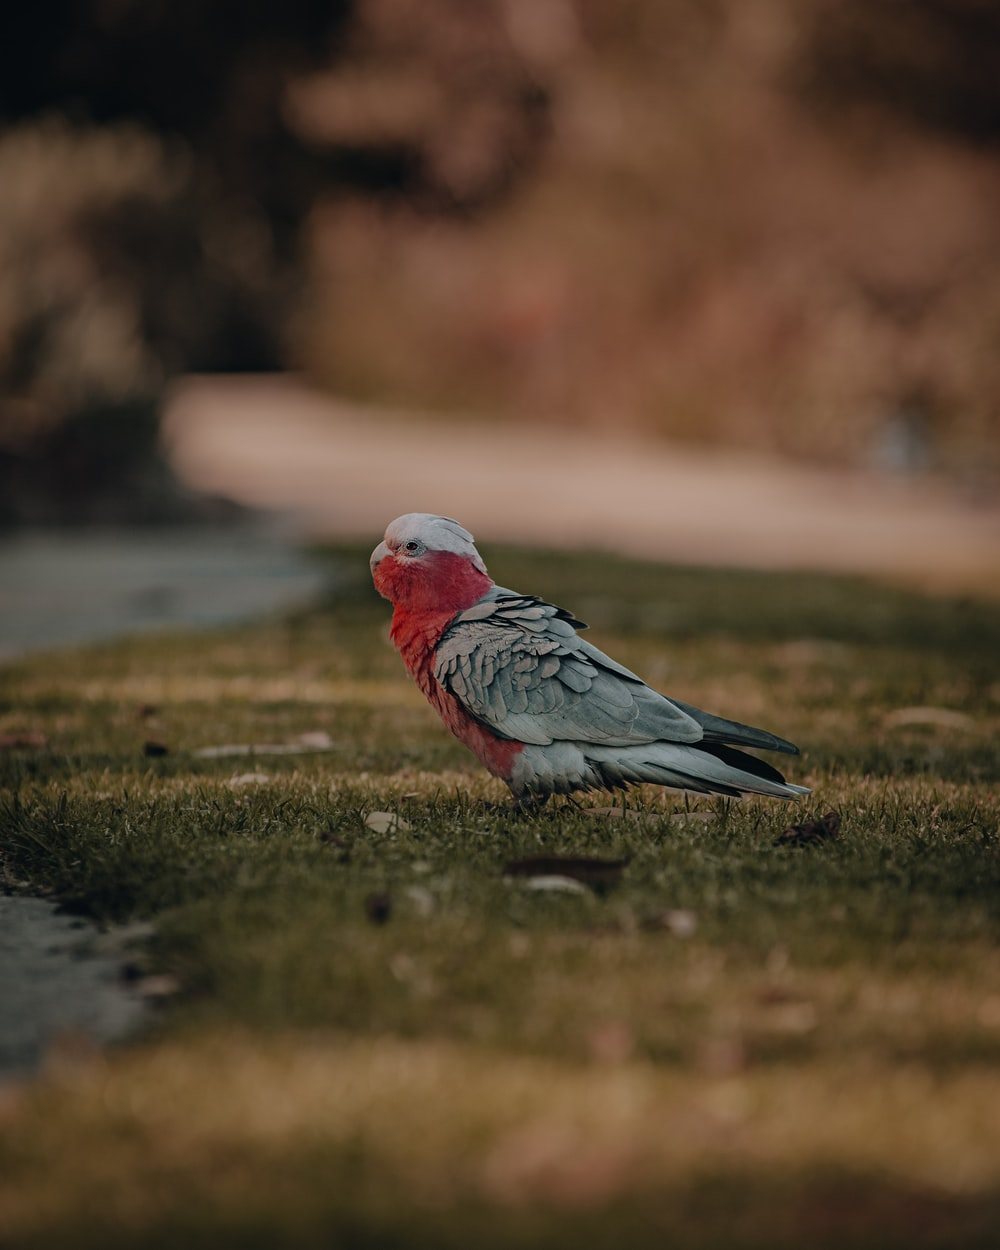 red and gray bird on green grass during daytime